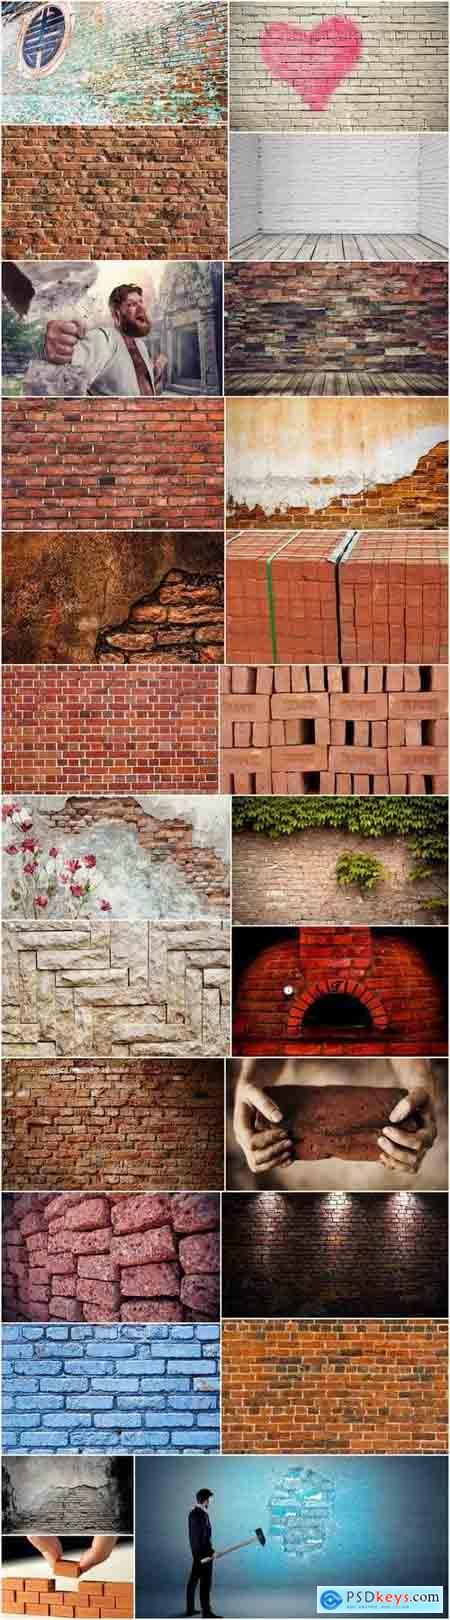 Brick wall pattern background is a decoration concept 25 HQ Jpeg